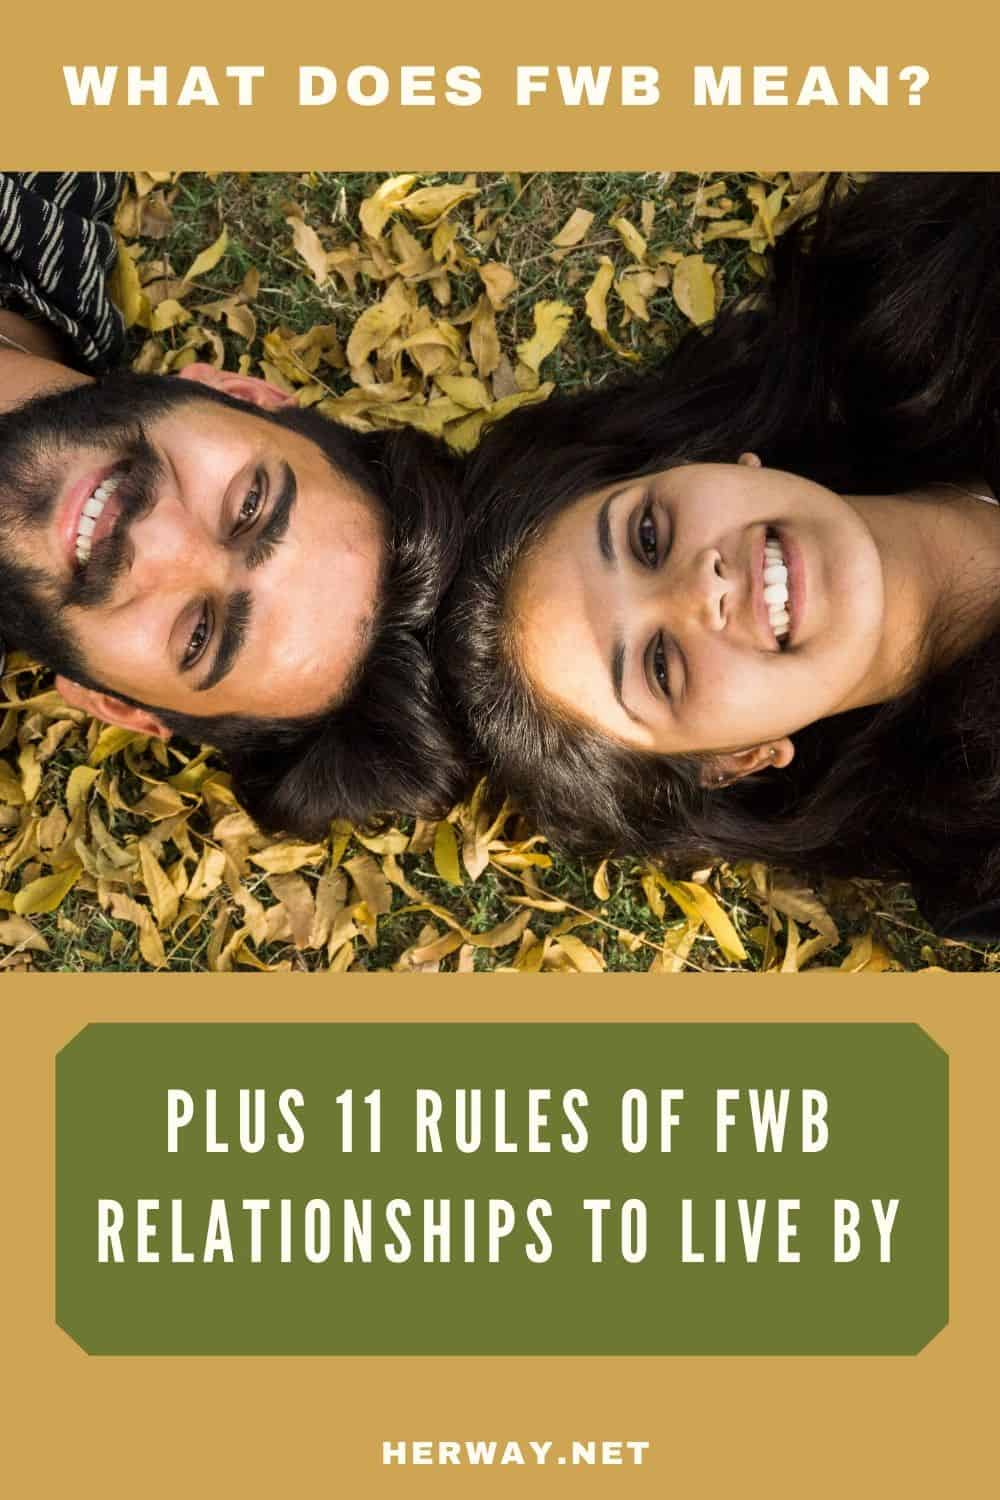 What Does FWB Mean? Plus 11 Rules Of FWB Relationships To Live By pinterest